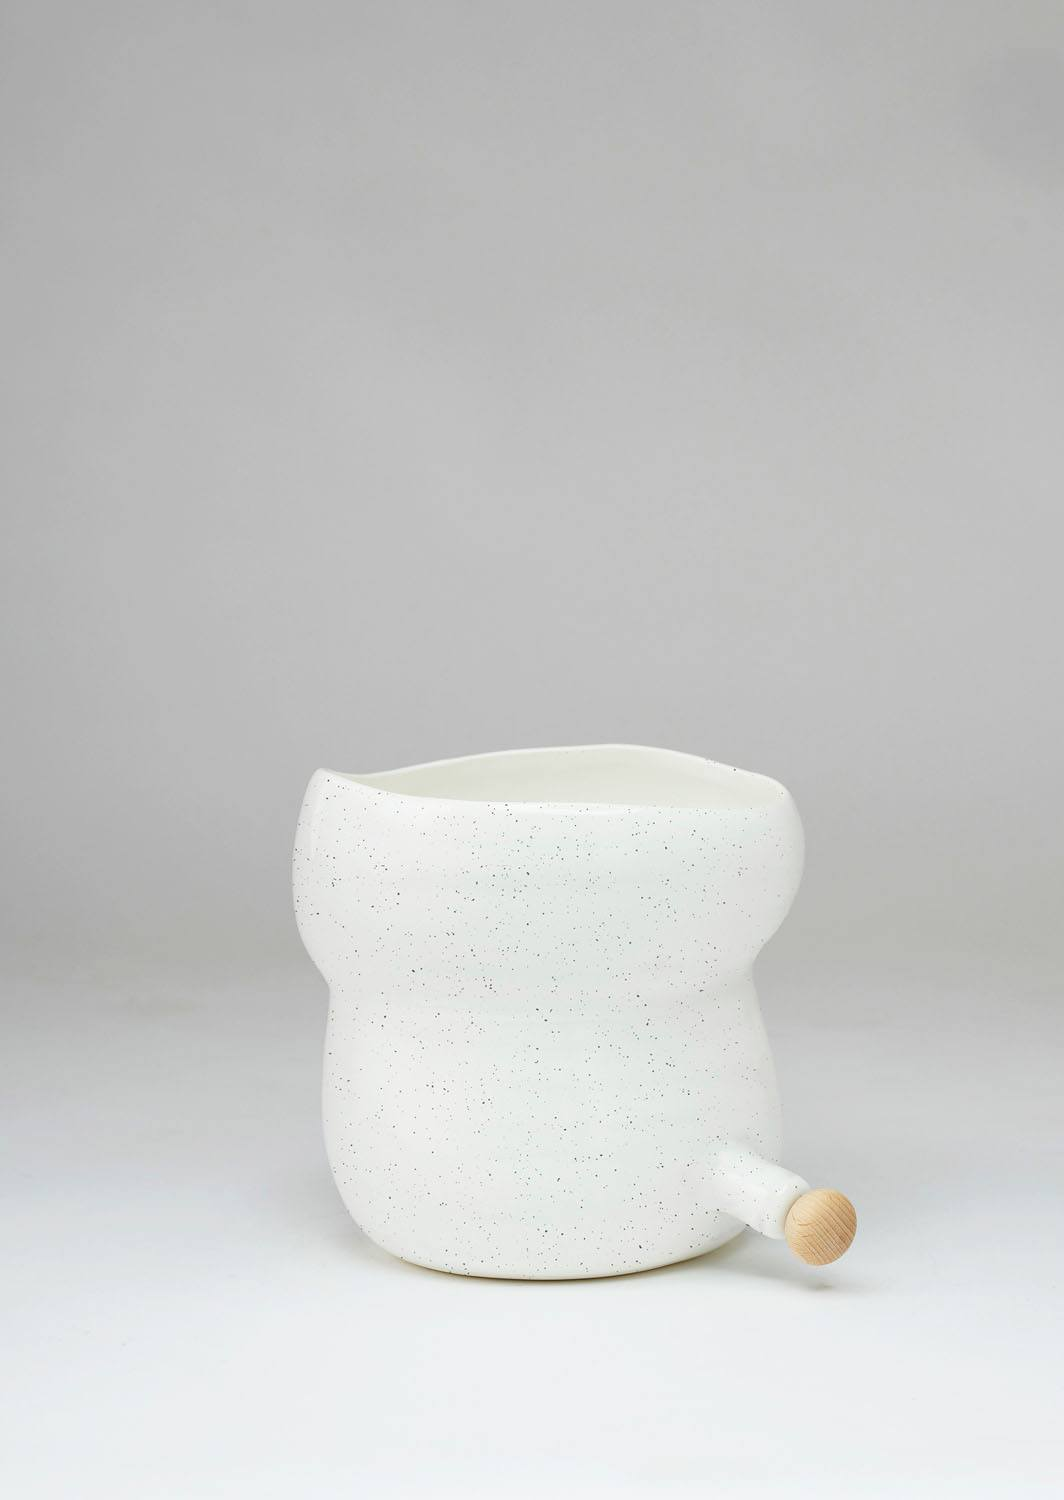 Angus & Celeste Plant Pod Pourer Pot White Speckle Small